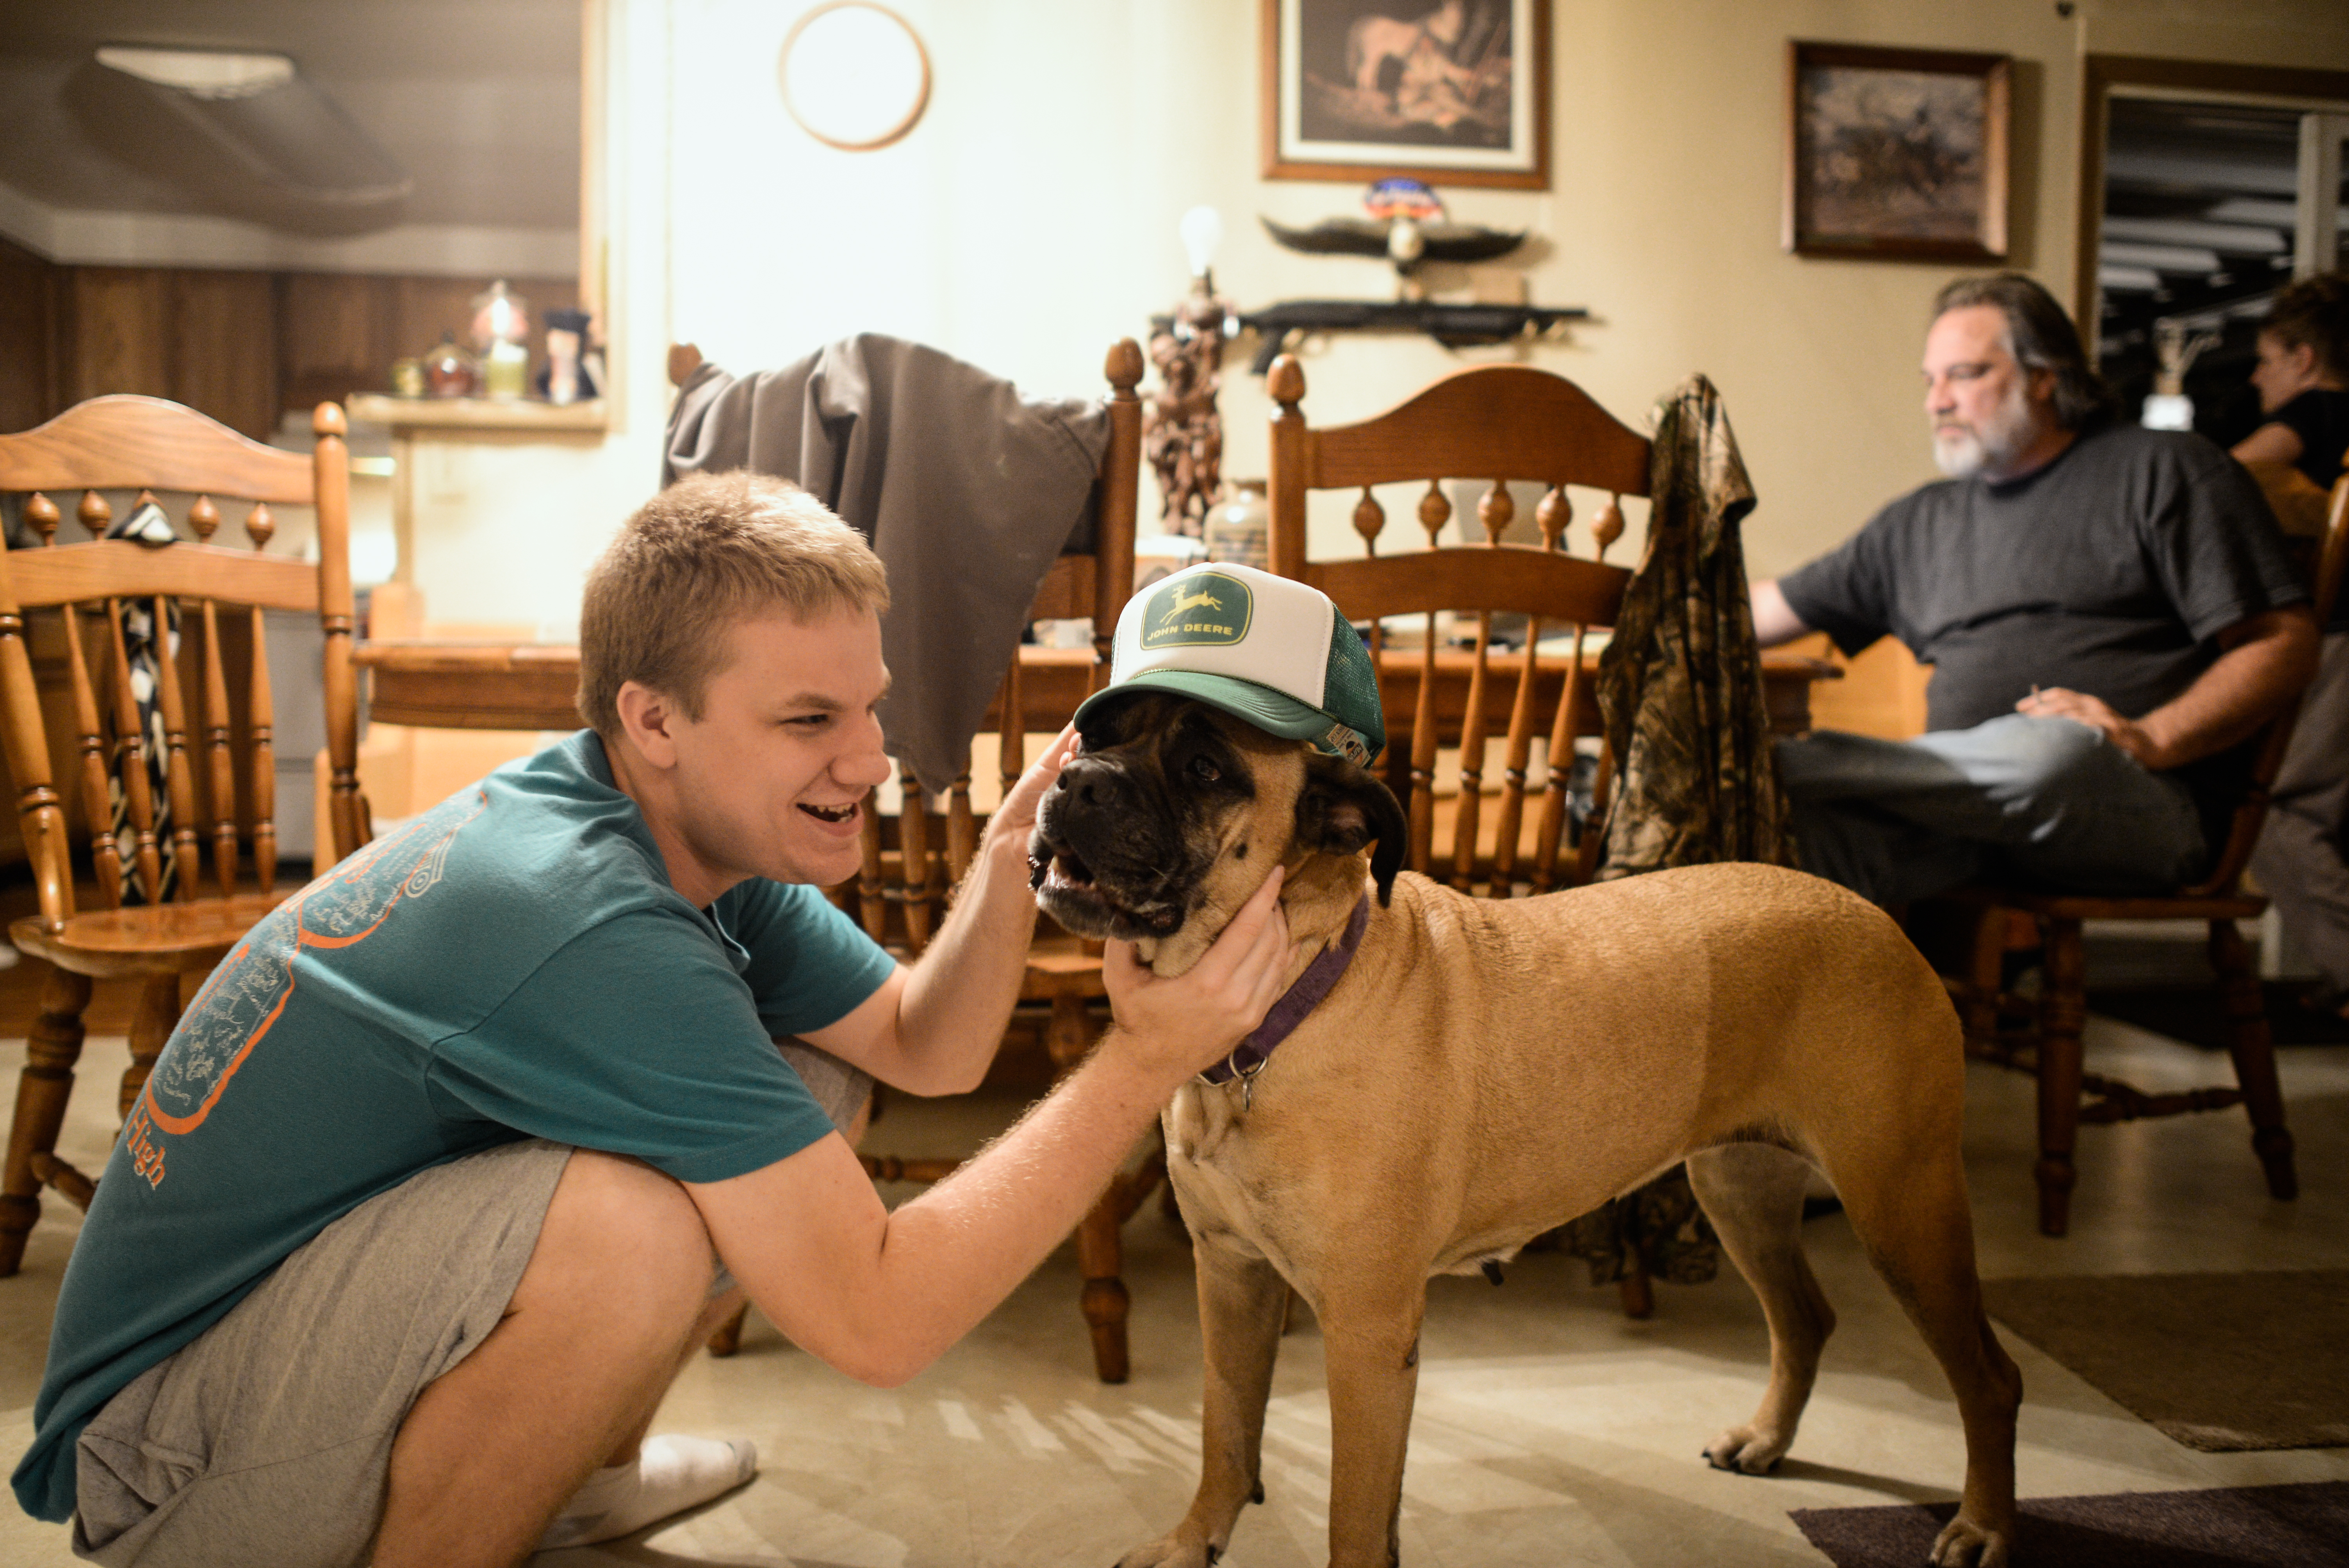 Trenton, Missouri. 2013.  Dalton shares a playful moment with his family dog, Roxy. The family dogs are a source of comfort for him.